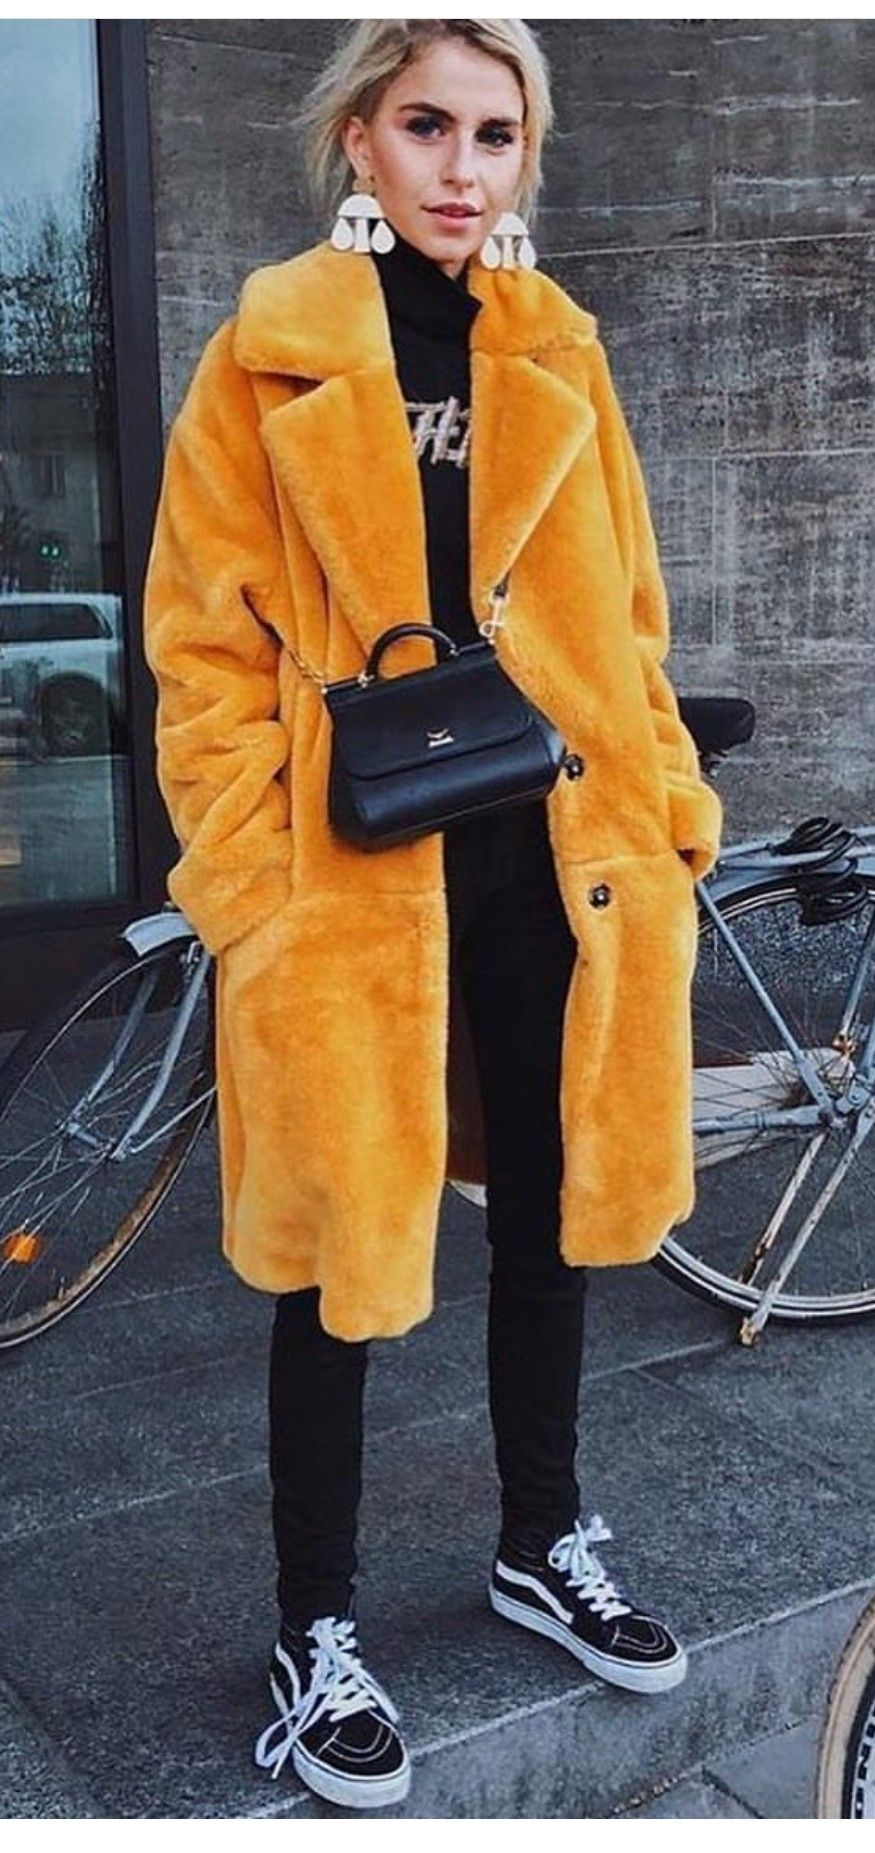 Faux Fur OutfitsVest Yellow Coat 2019Winter In mN8nw0